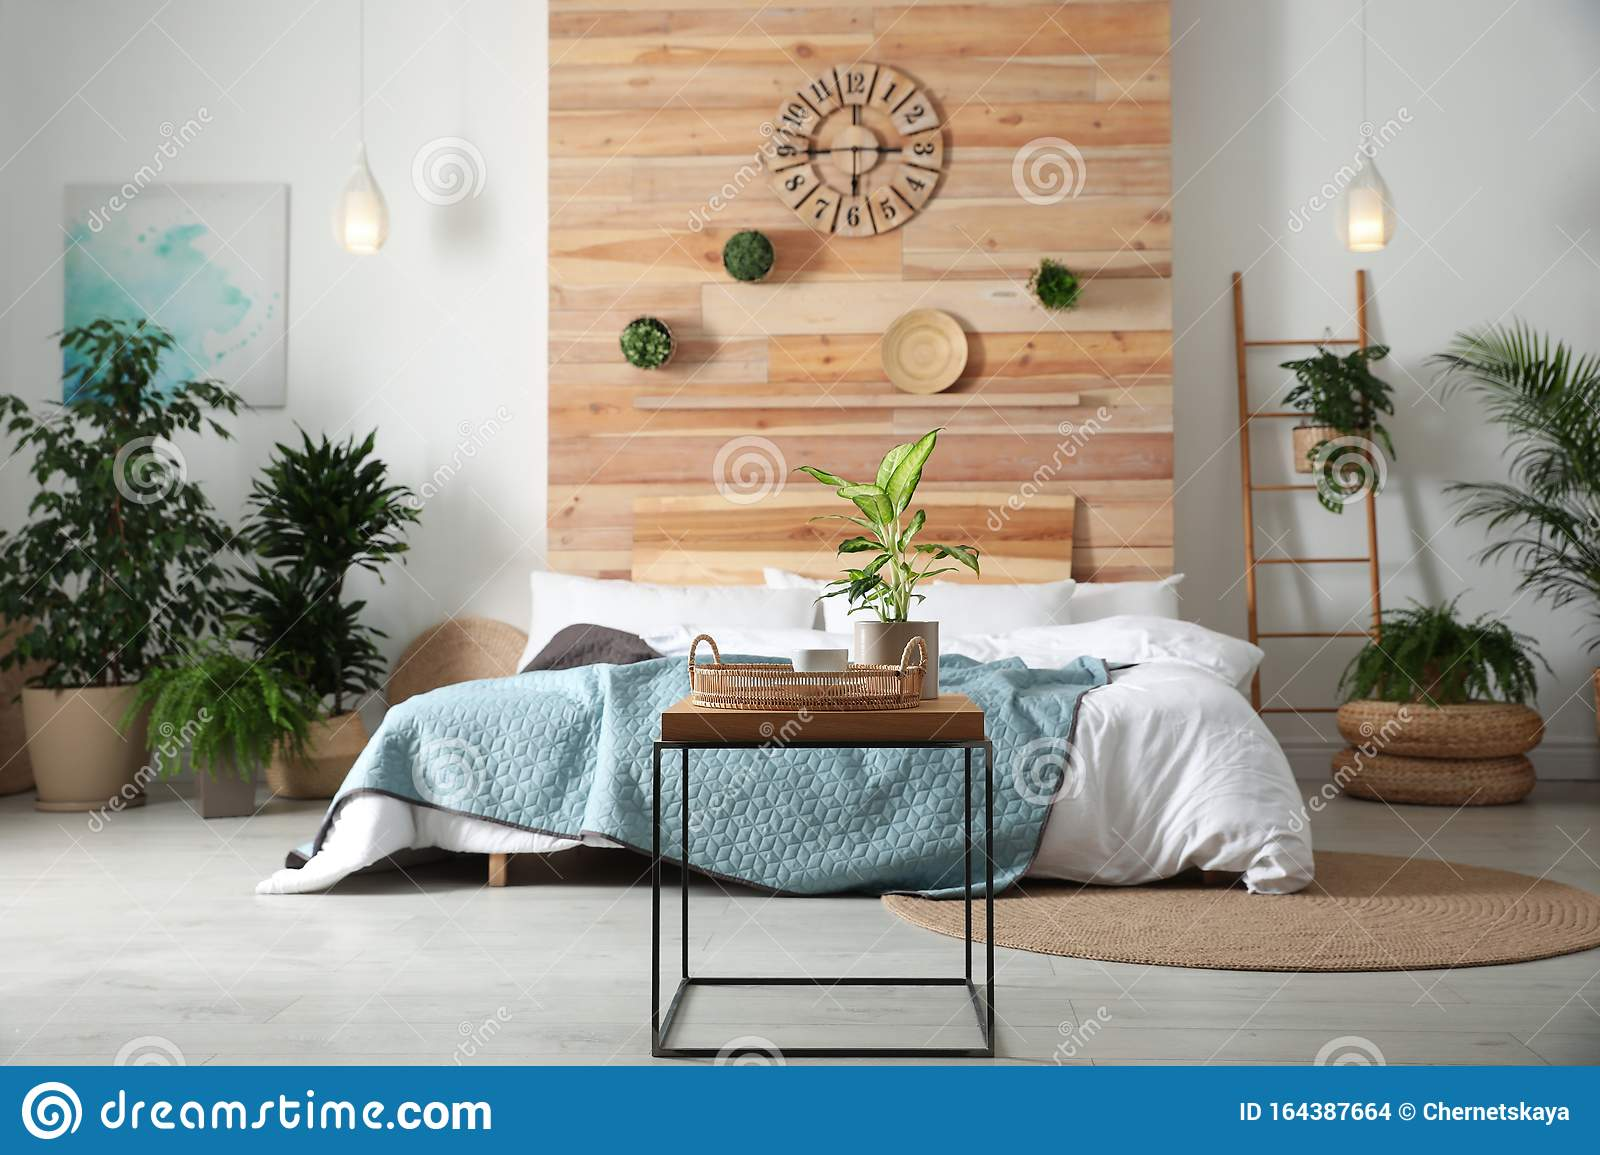 Stylish Bedroom Interior With Plants Home Design Ideas Stock Photo Image Of Contemporary Botanical 164387664